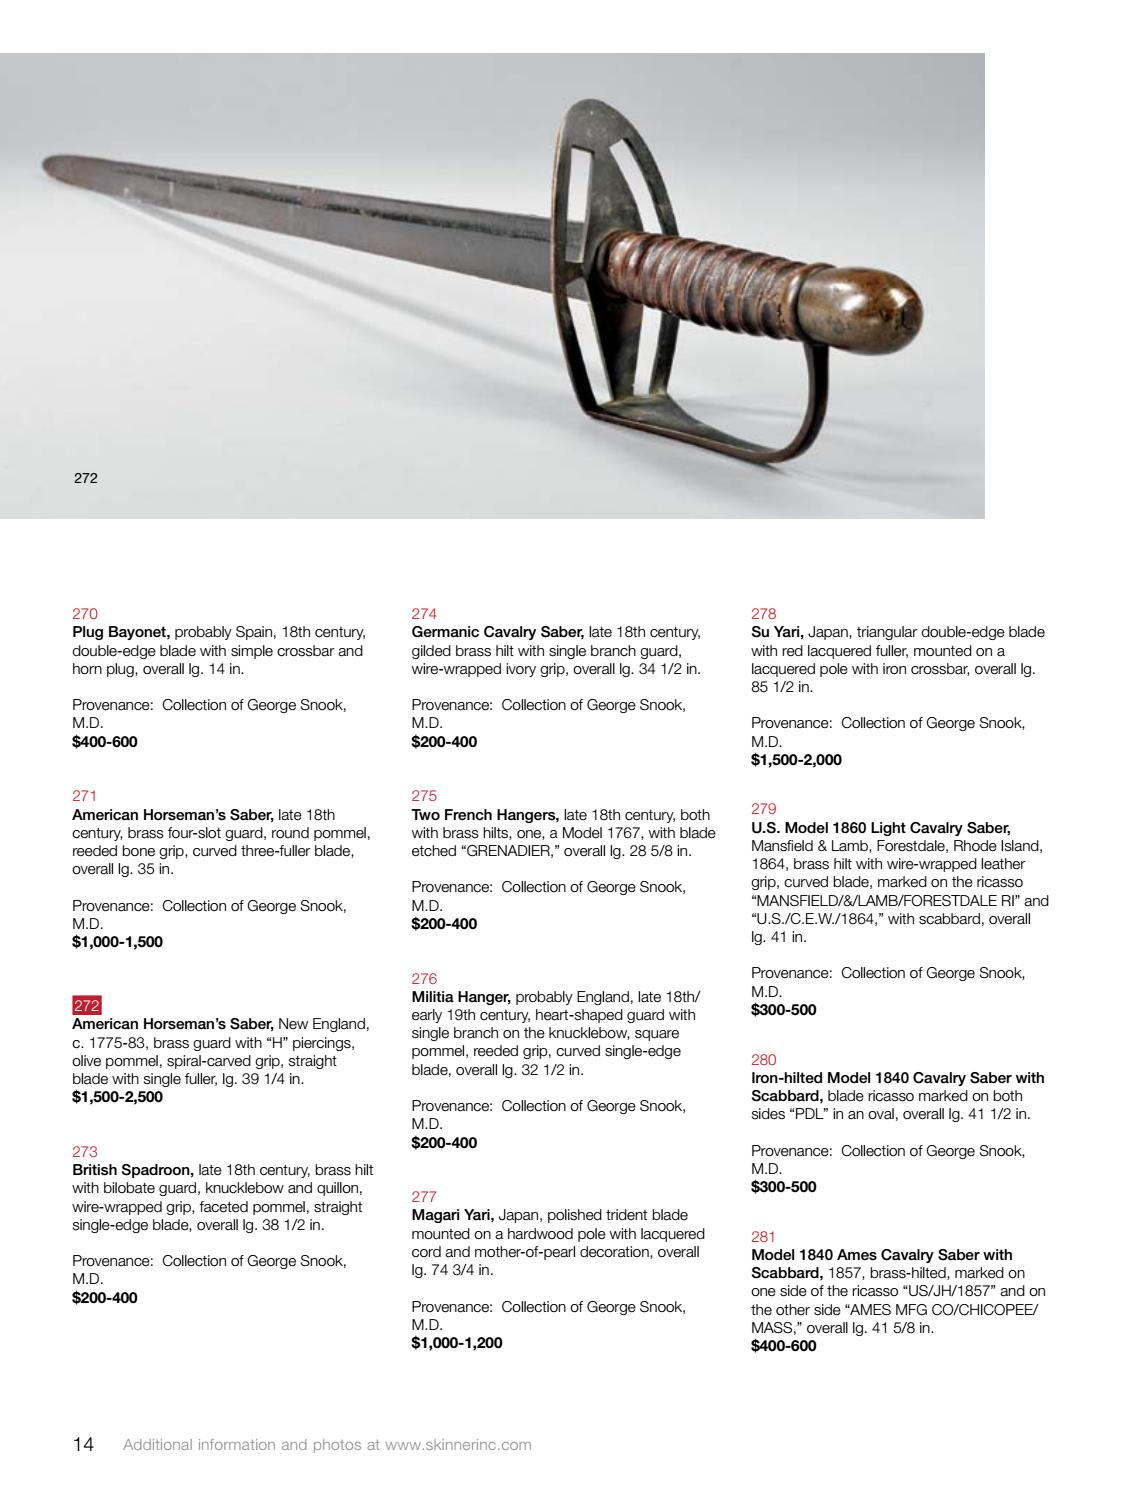 Historic Arms Militaria Skinner Auction 2946m By Inc Wiring A Plug In Spain Issuu